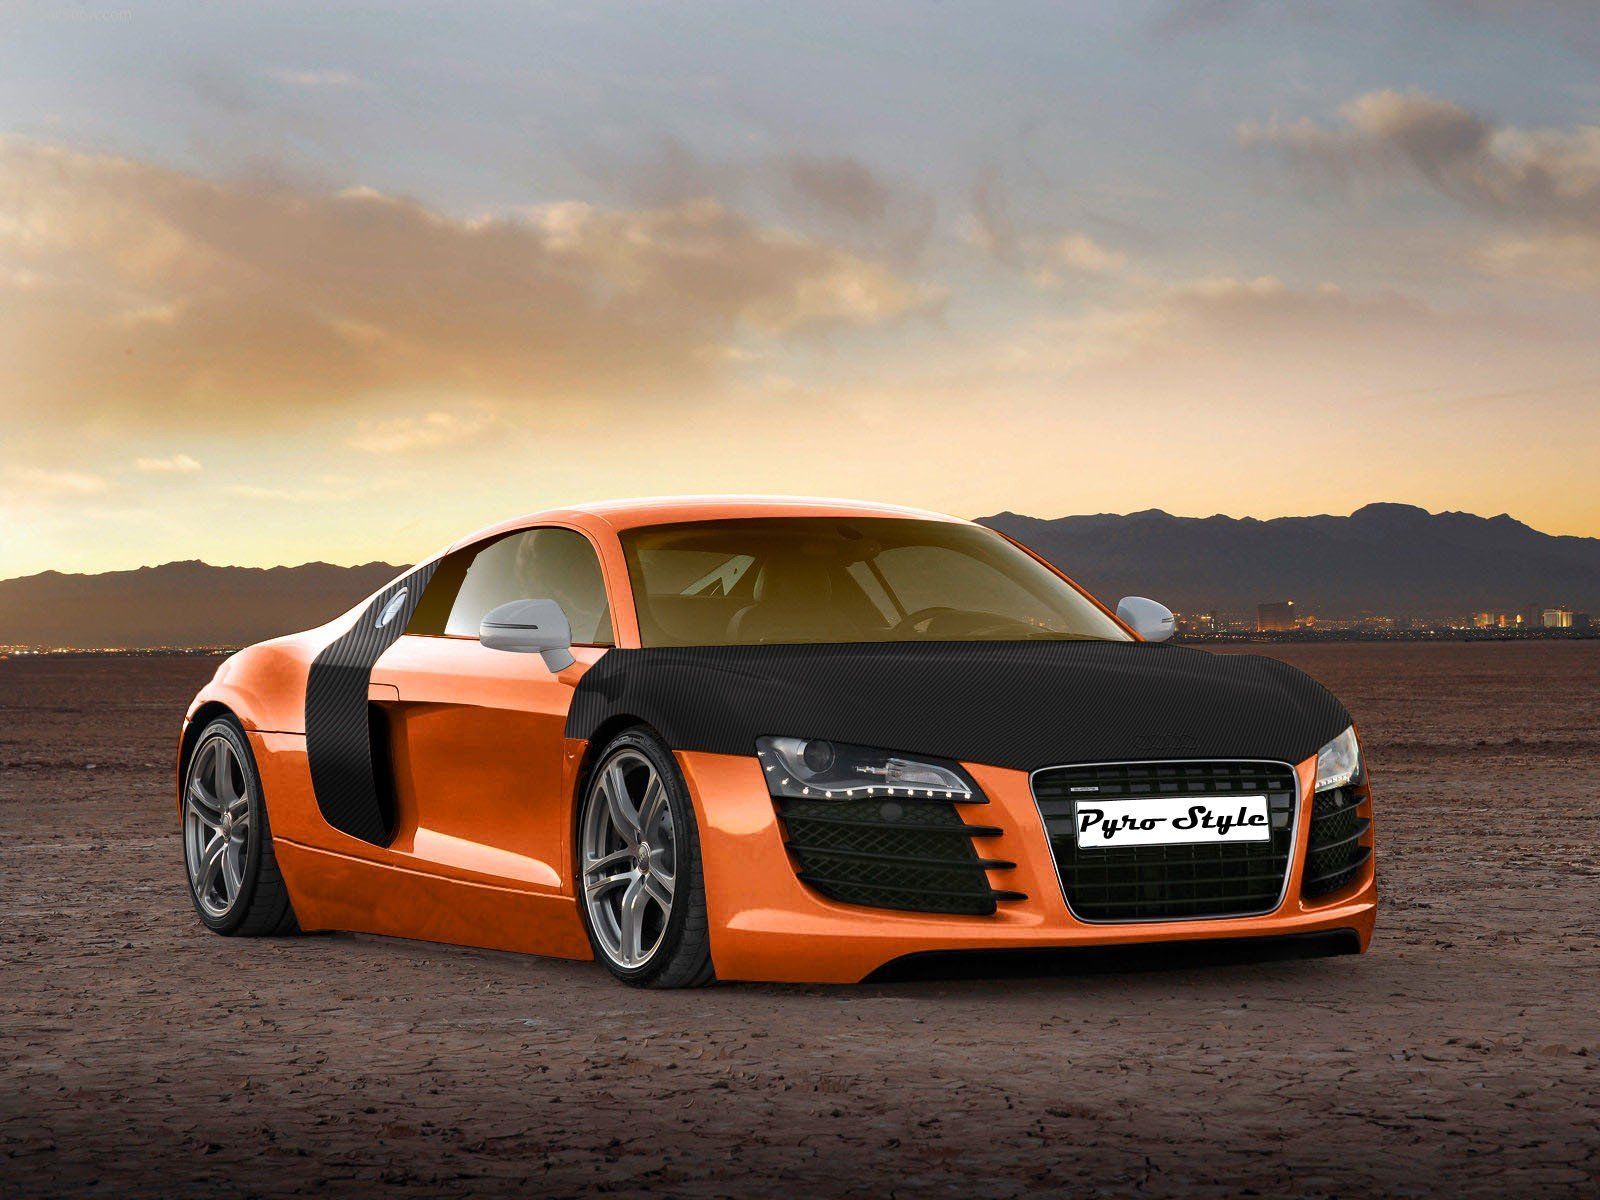 Latest Hd Car Wallpapers Audi R8 Wallpaper Free Download